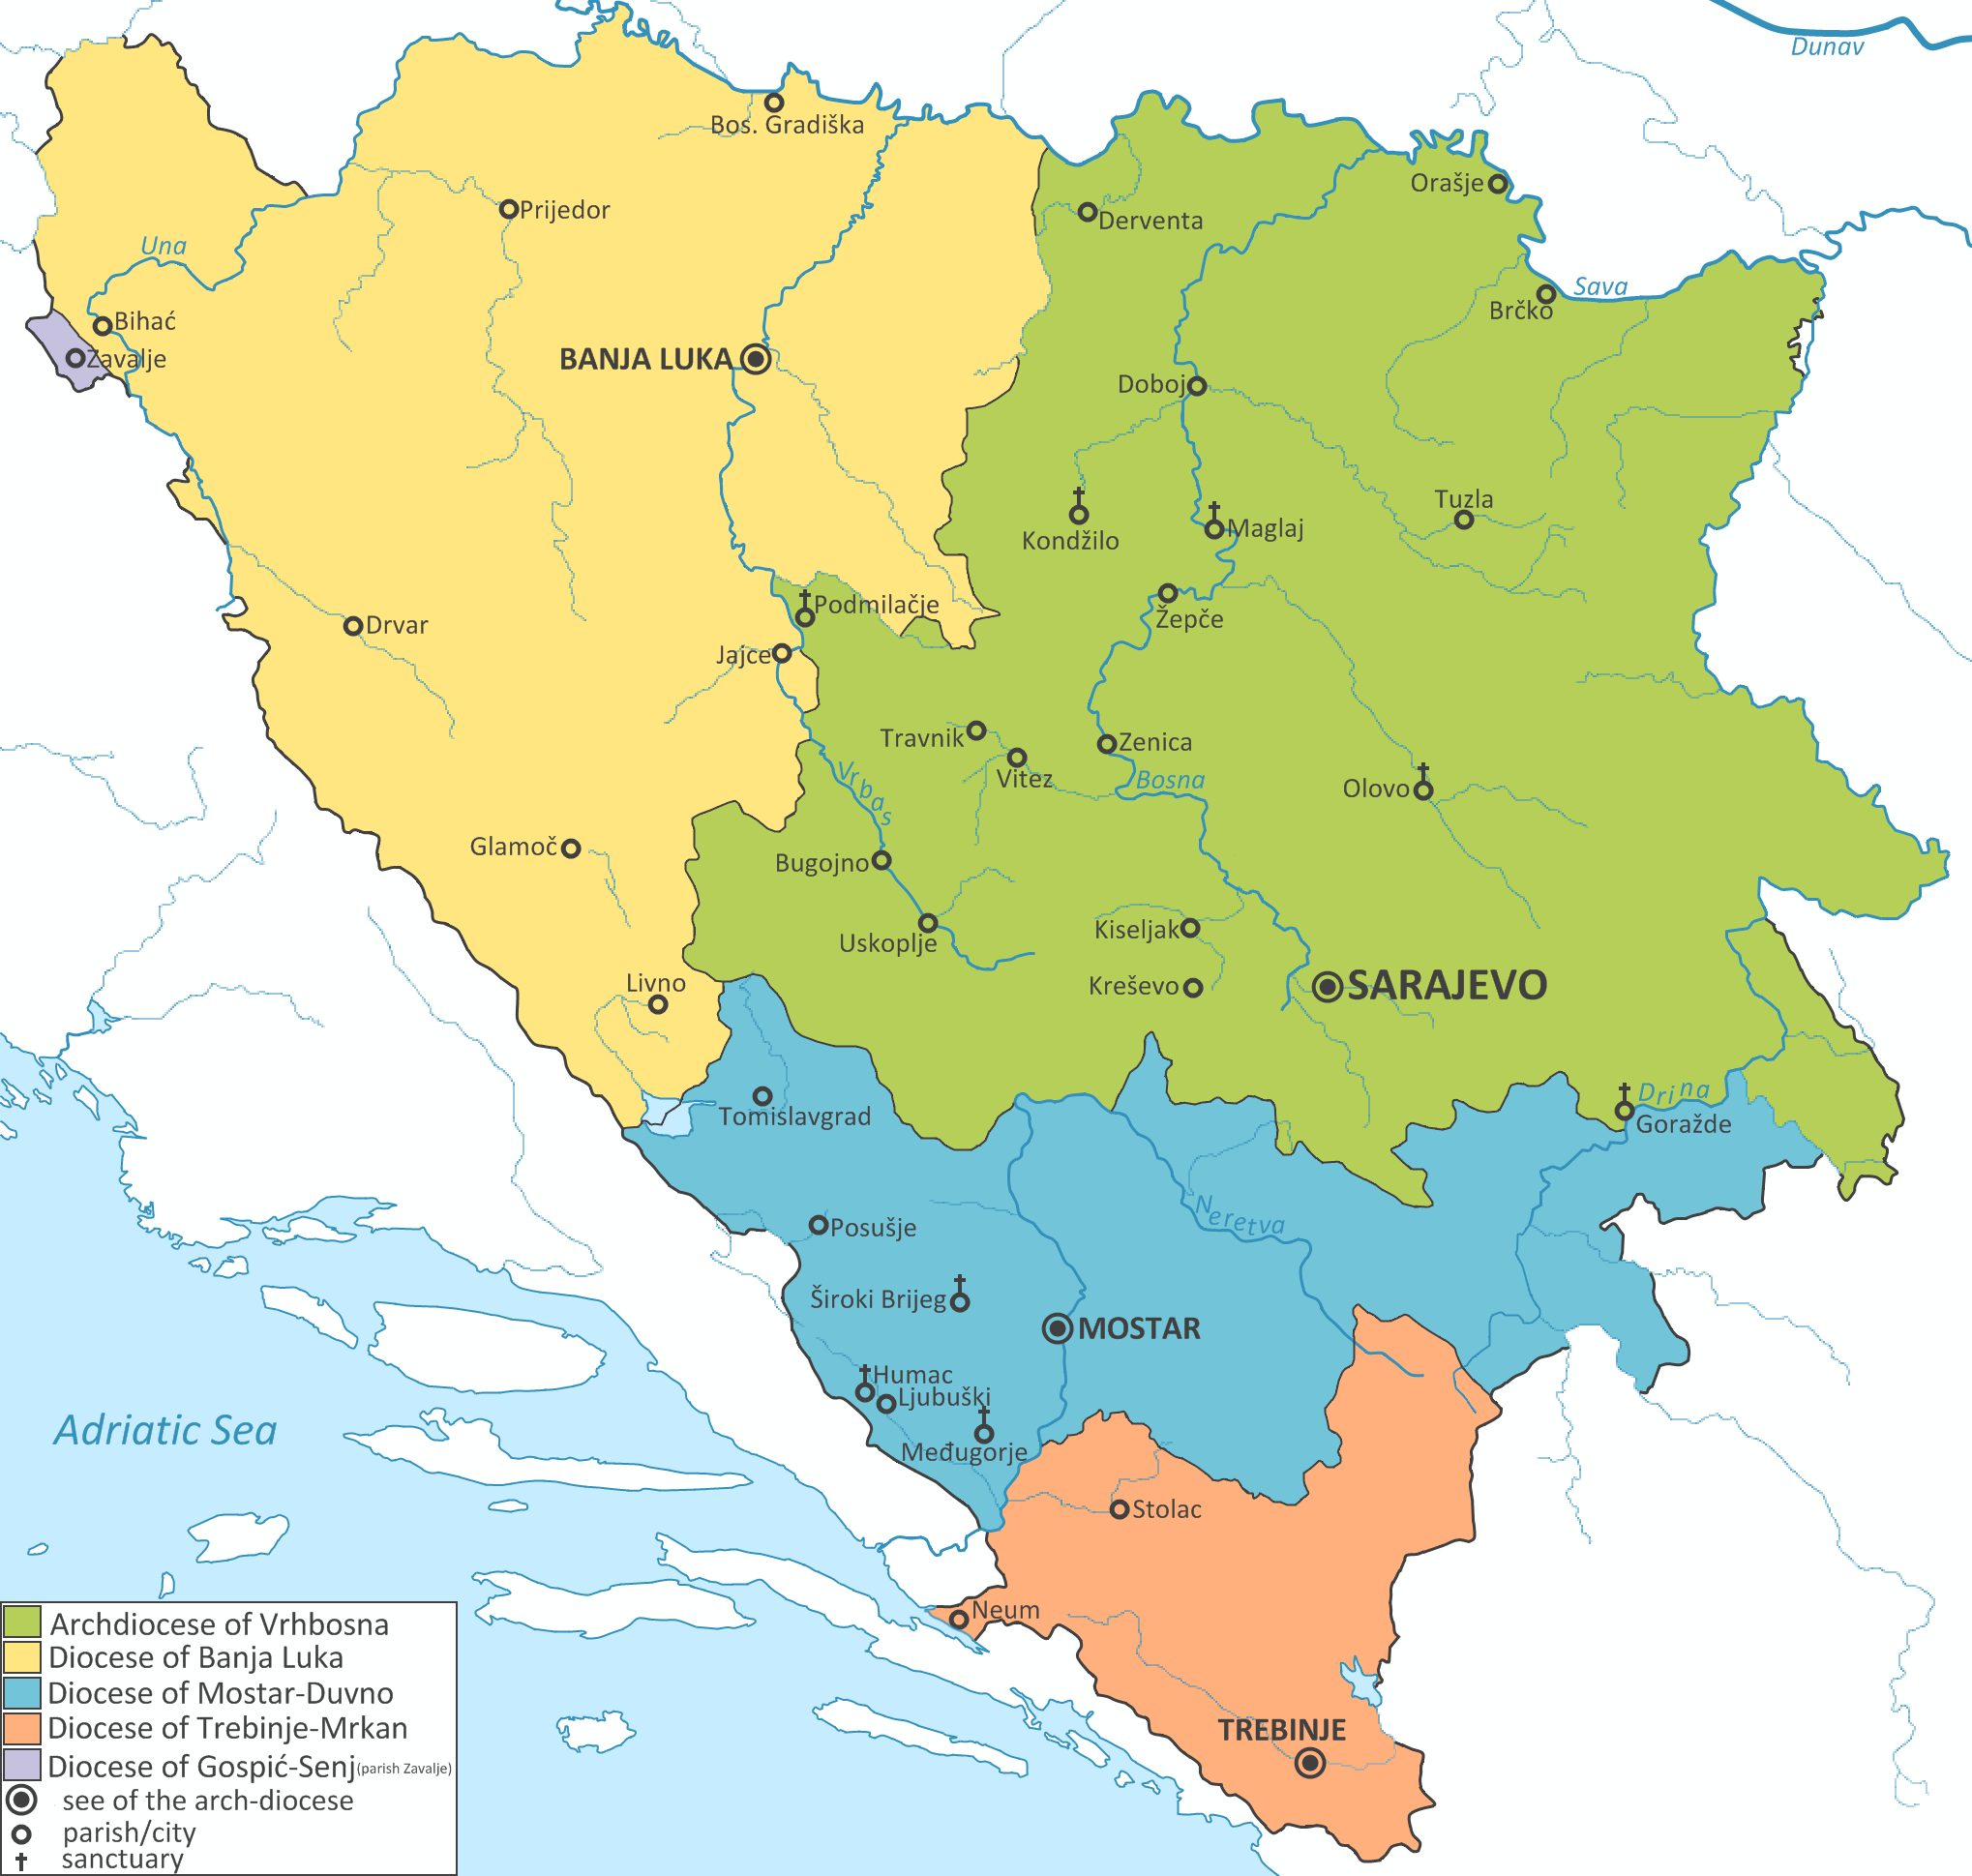 FileMap of Dioceses in Bosnia and Herzegovina ENpng Wikimedia